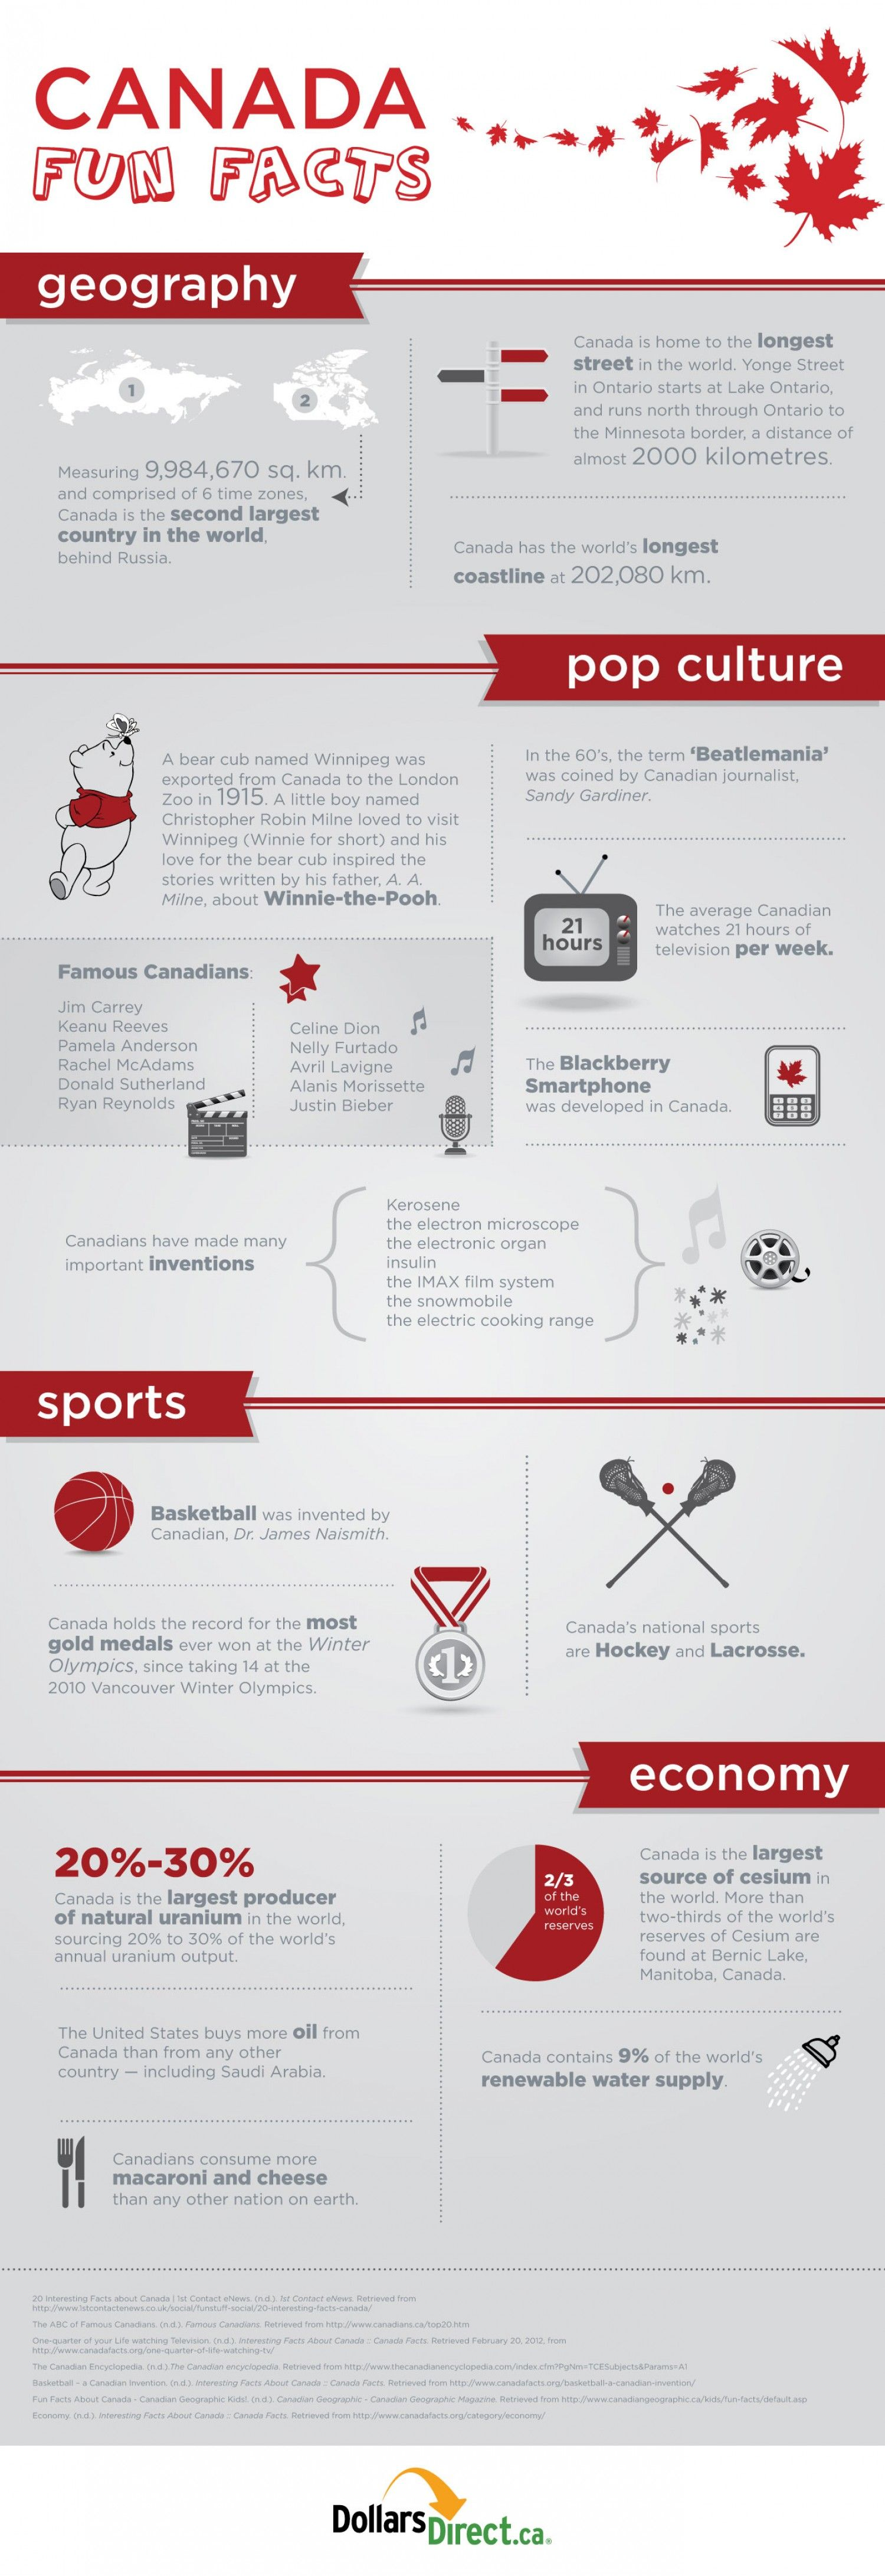 Canada Fun Facts Infographic Facts about canada, Fun